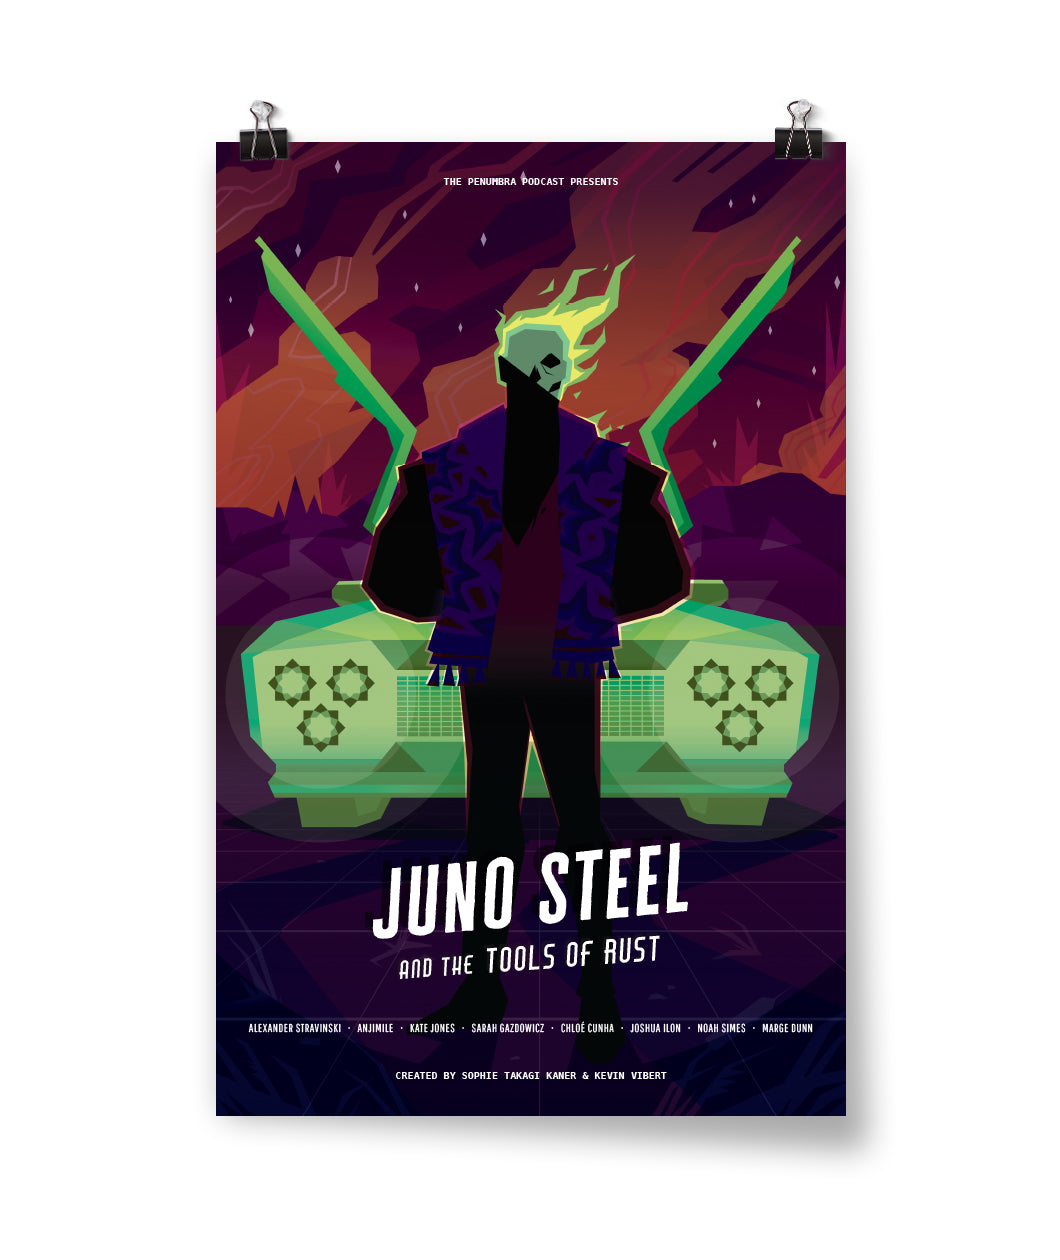 Juno Steel and the Tools of Rust